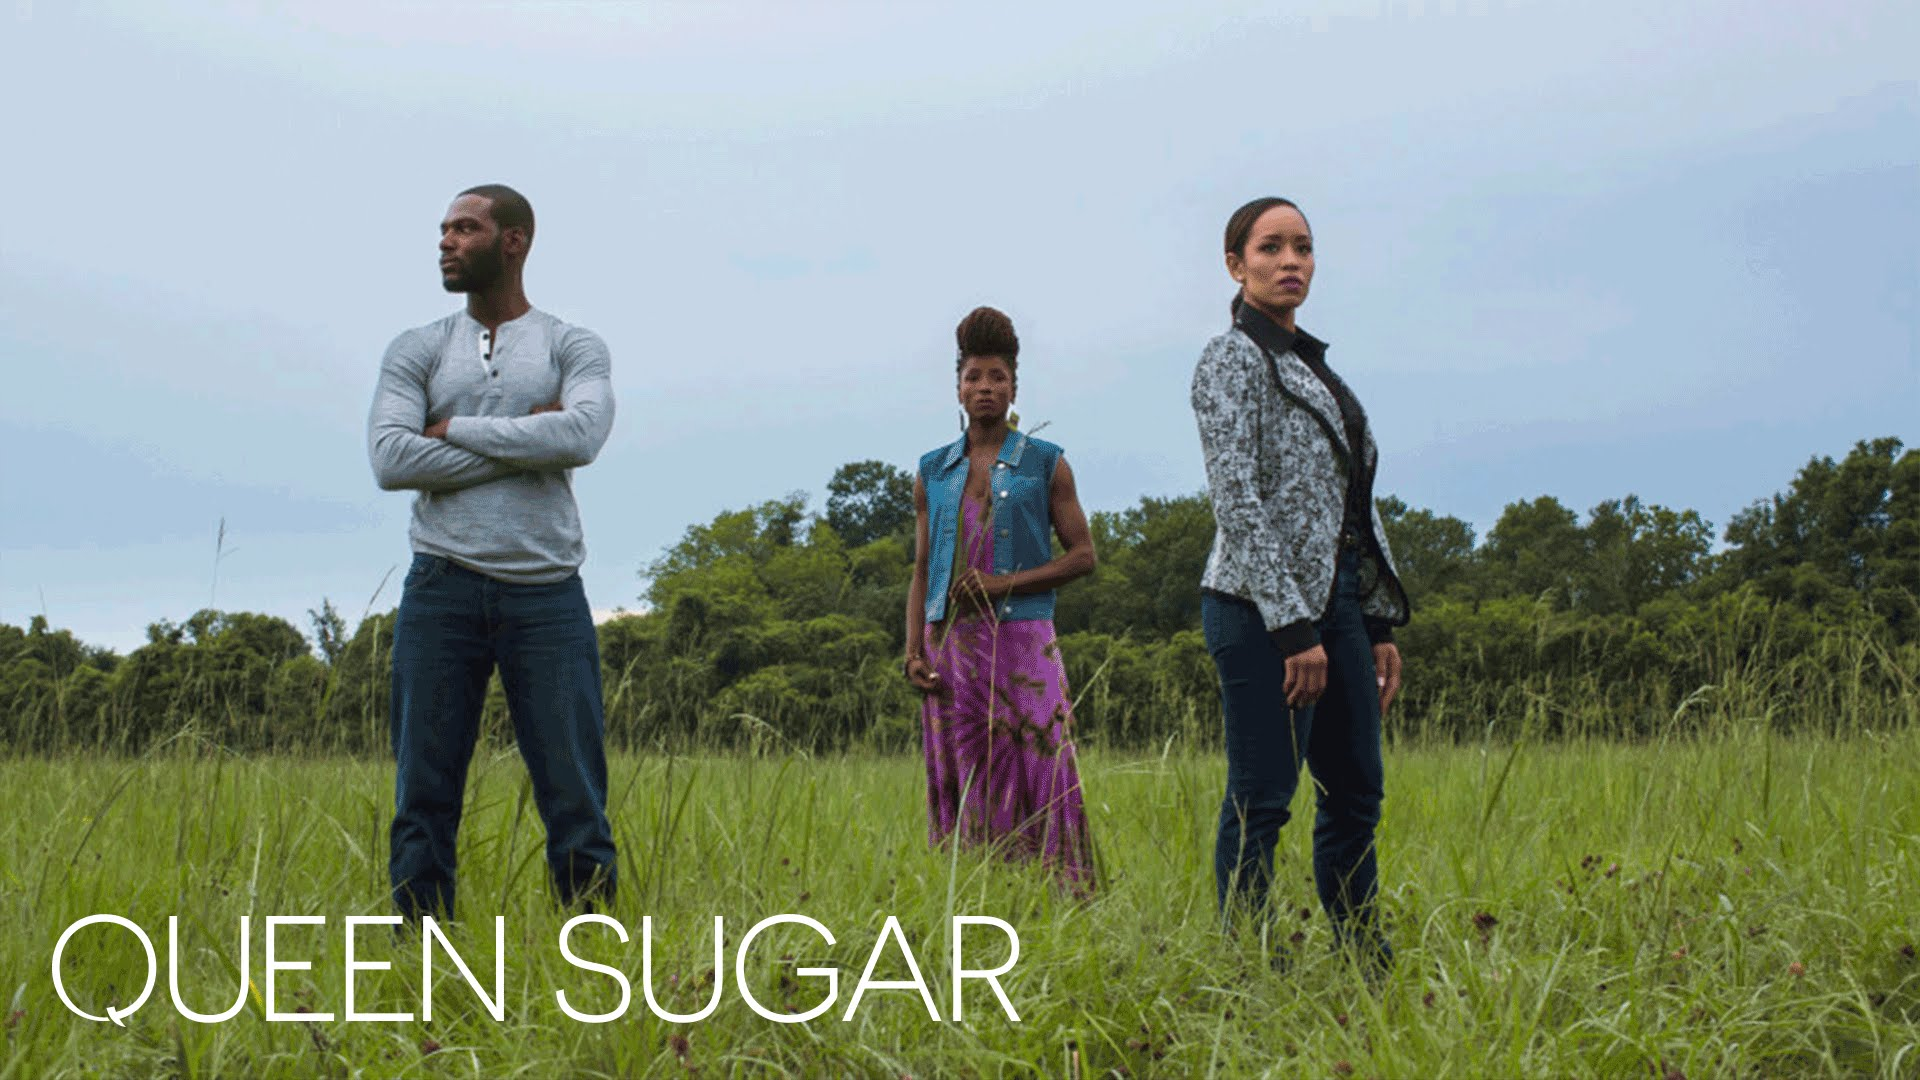 Queen Sugar Season 1 Promo 1